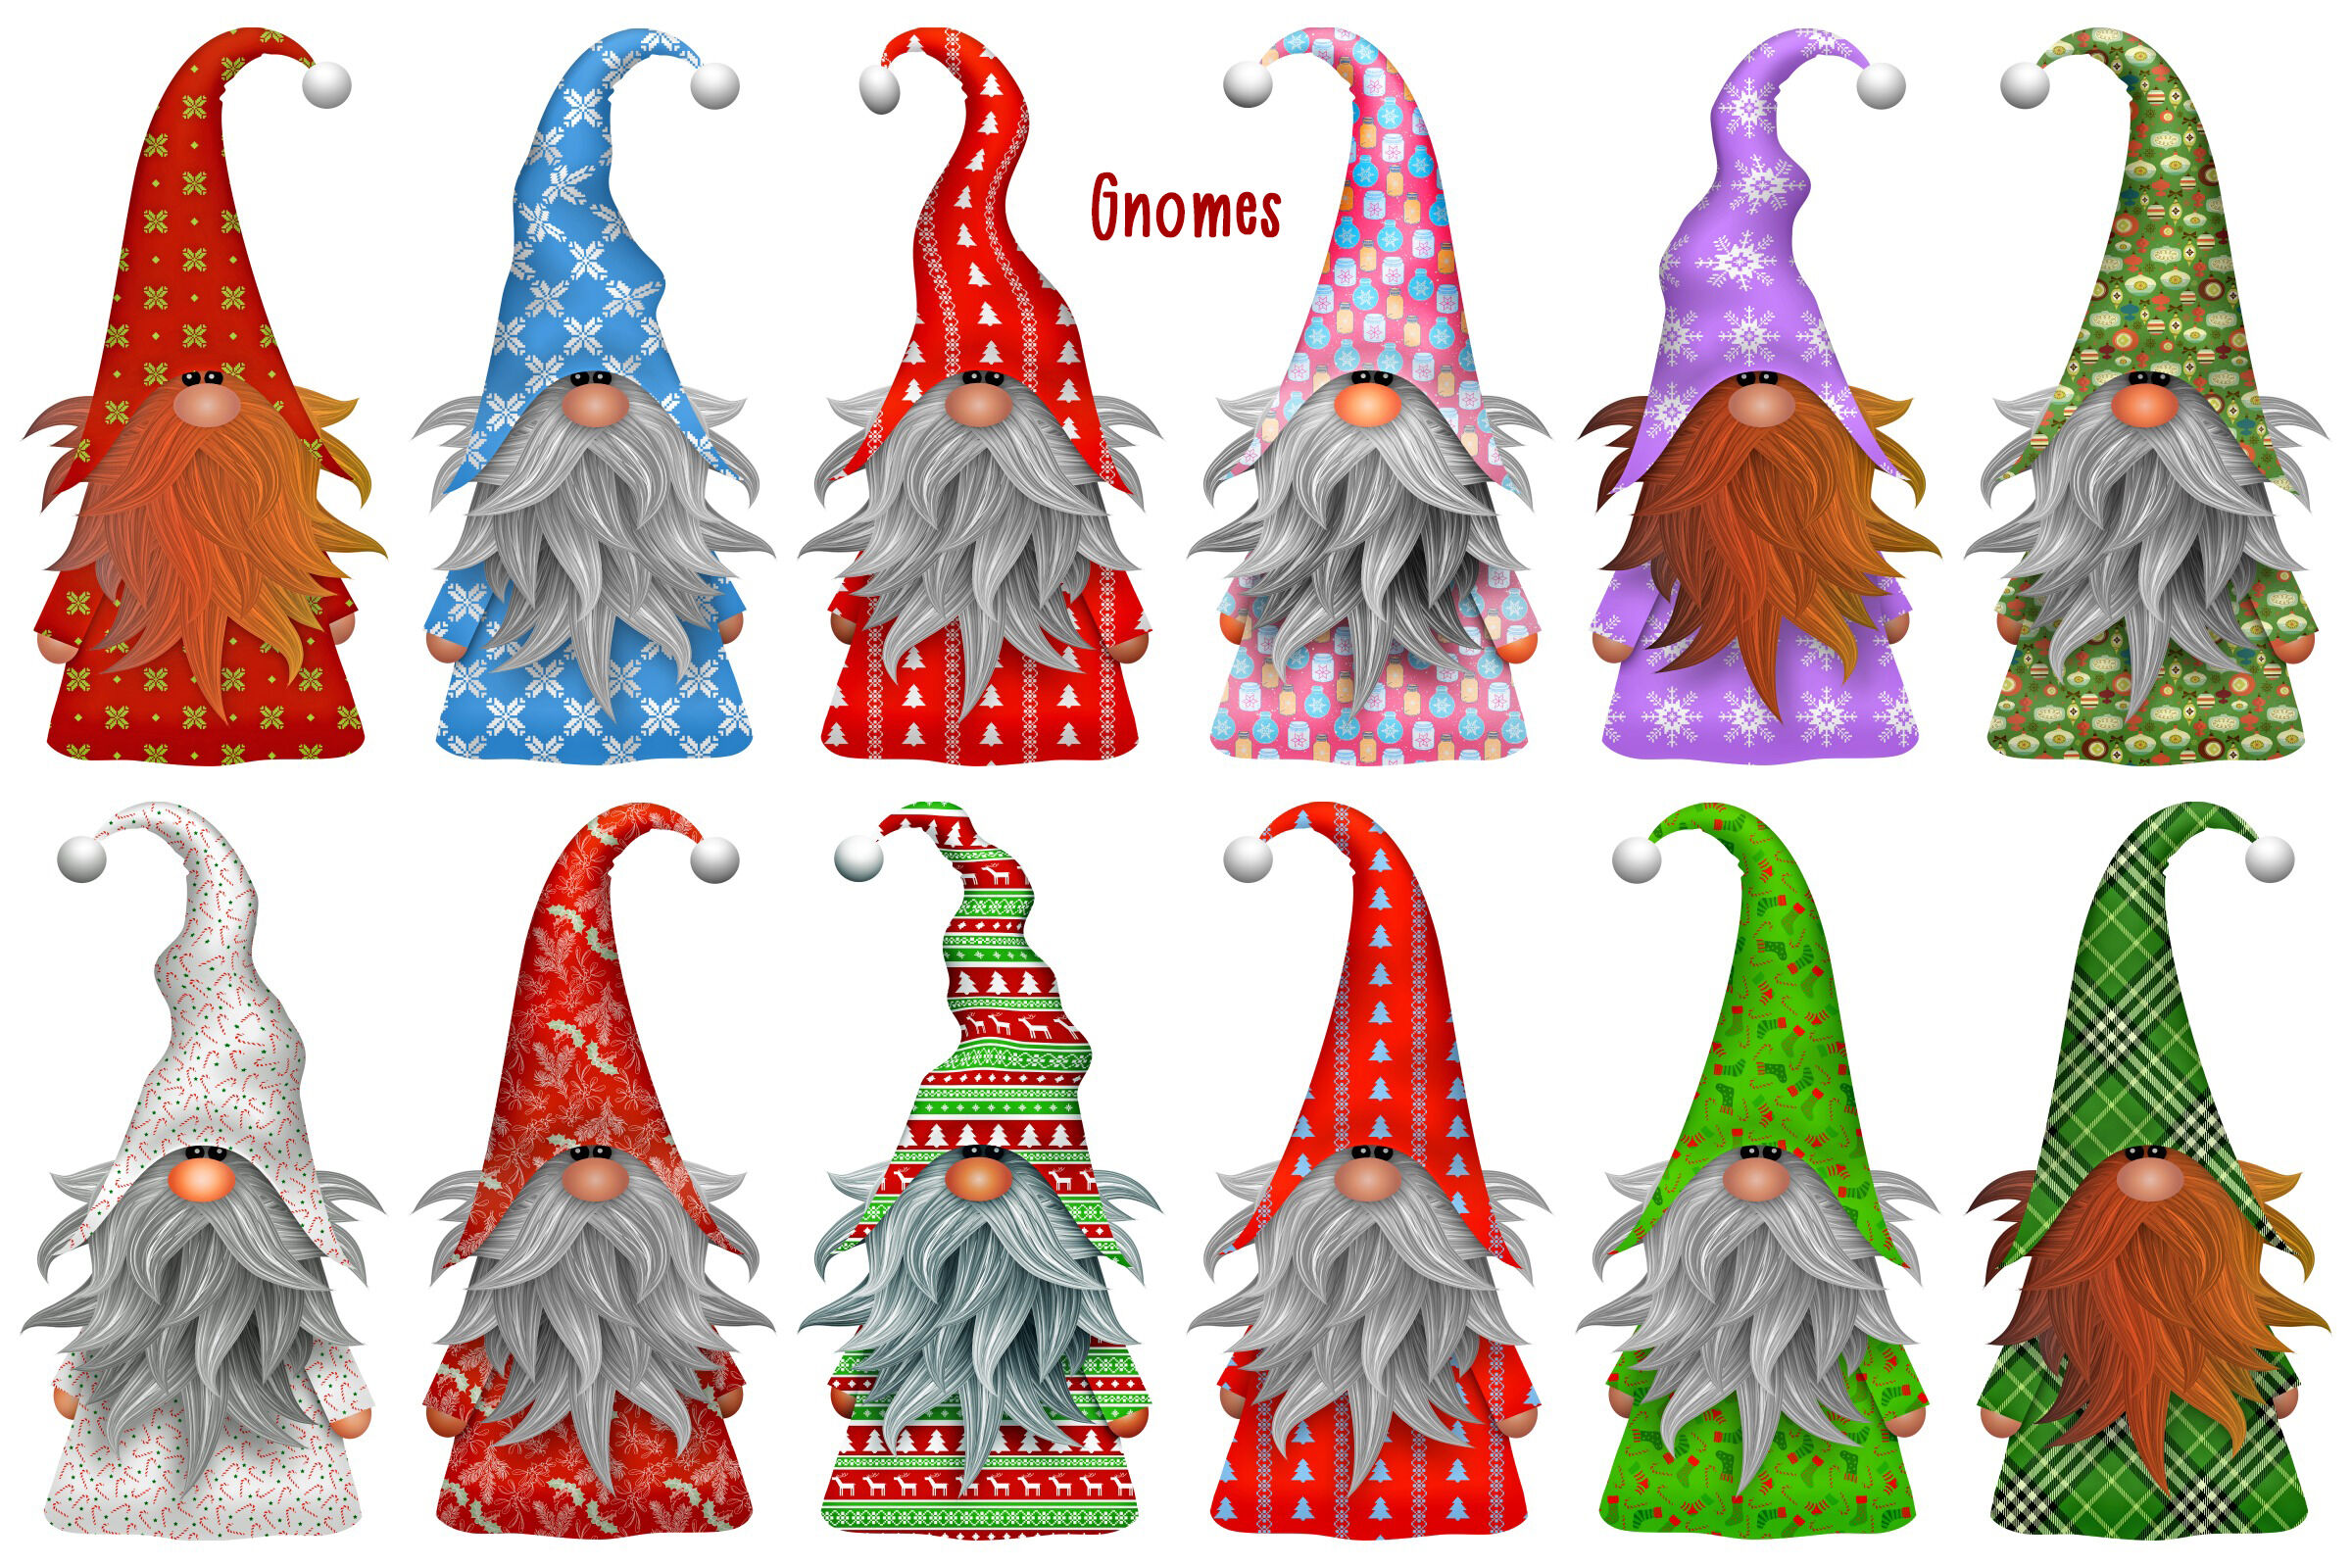 Christmas Gnomes and Scenes Clip Art By Me and Ameliè.